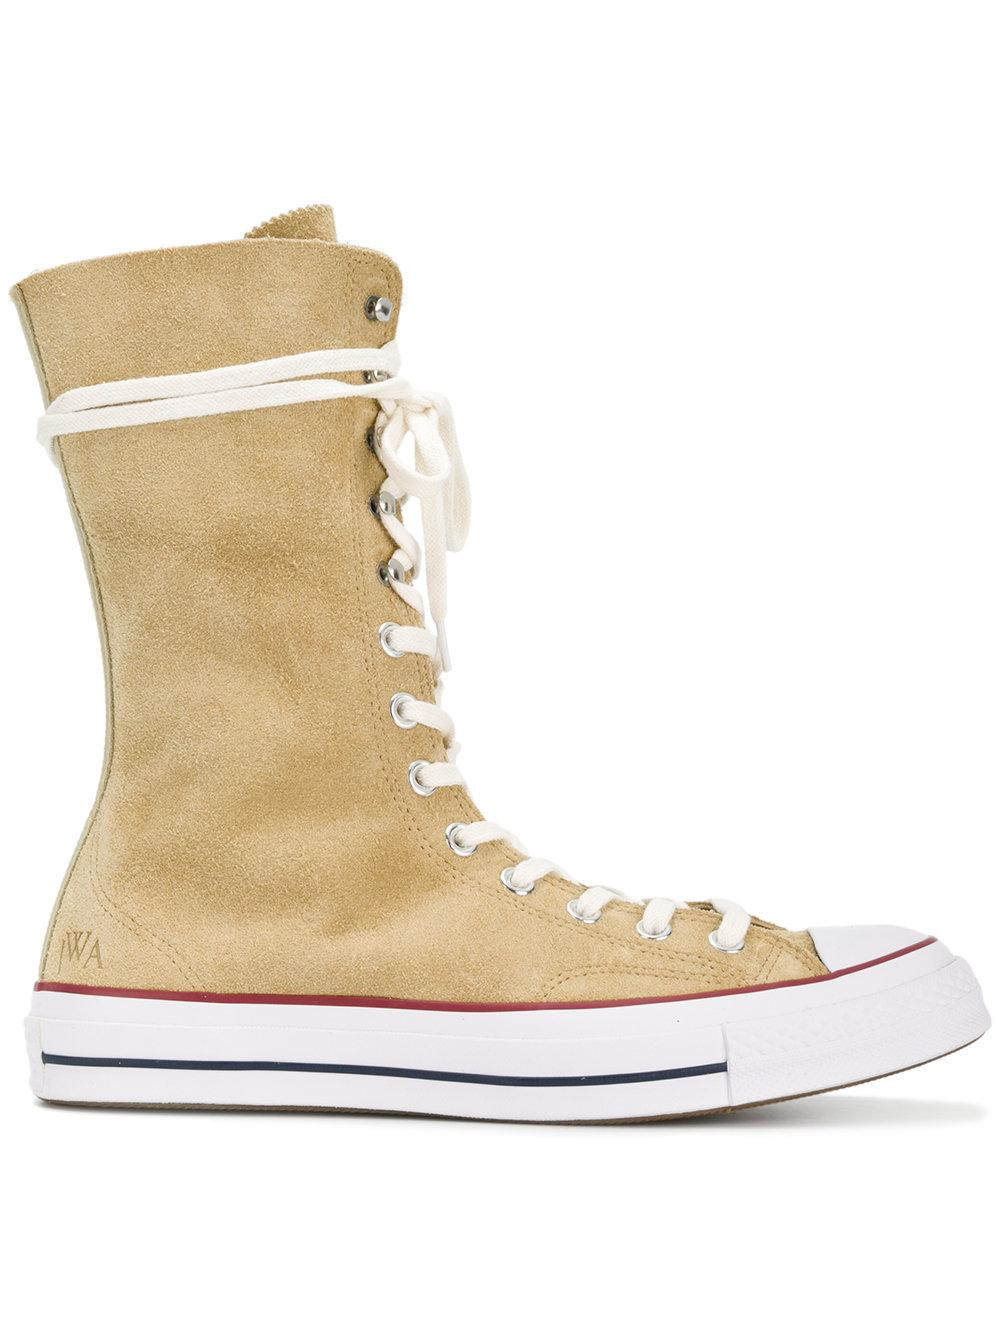 Converse X Jw Anderson Suede High-top Trainers In Beige